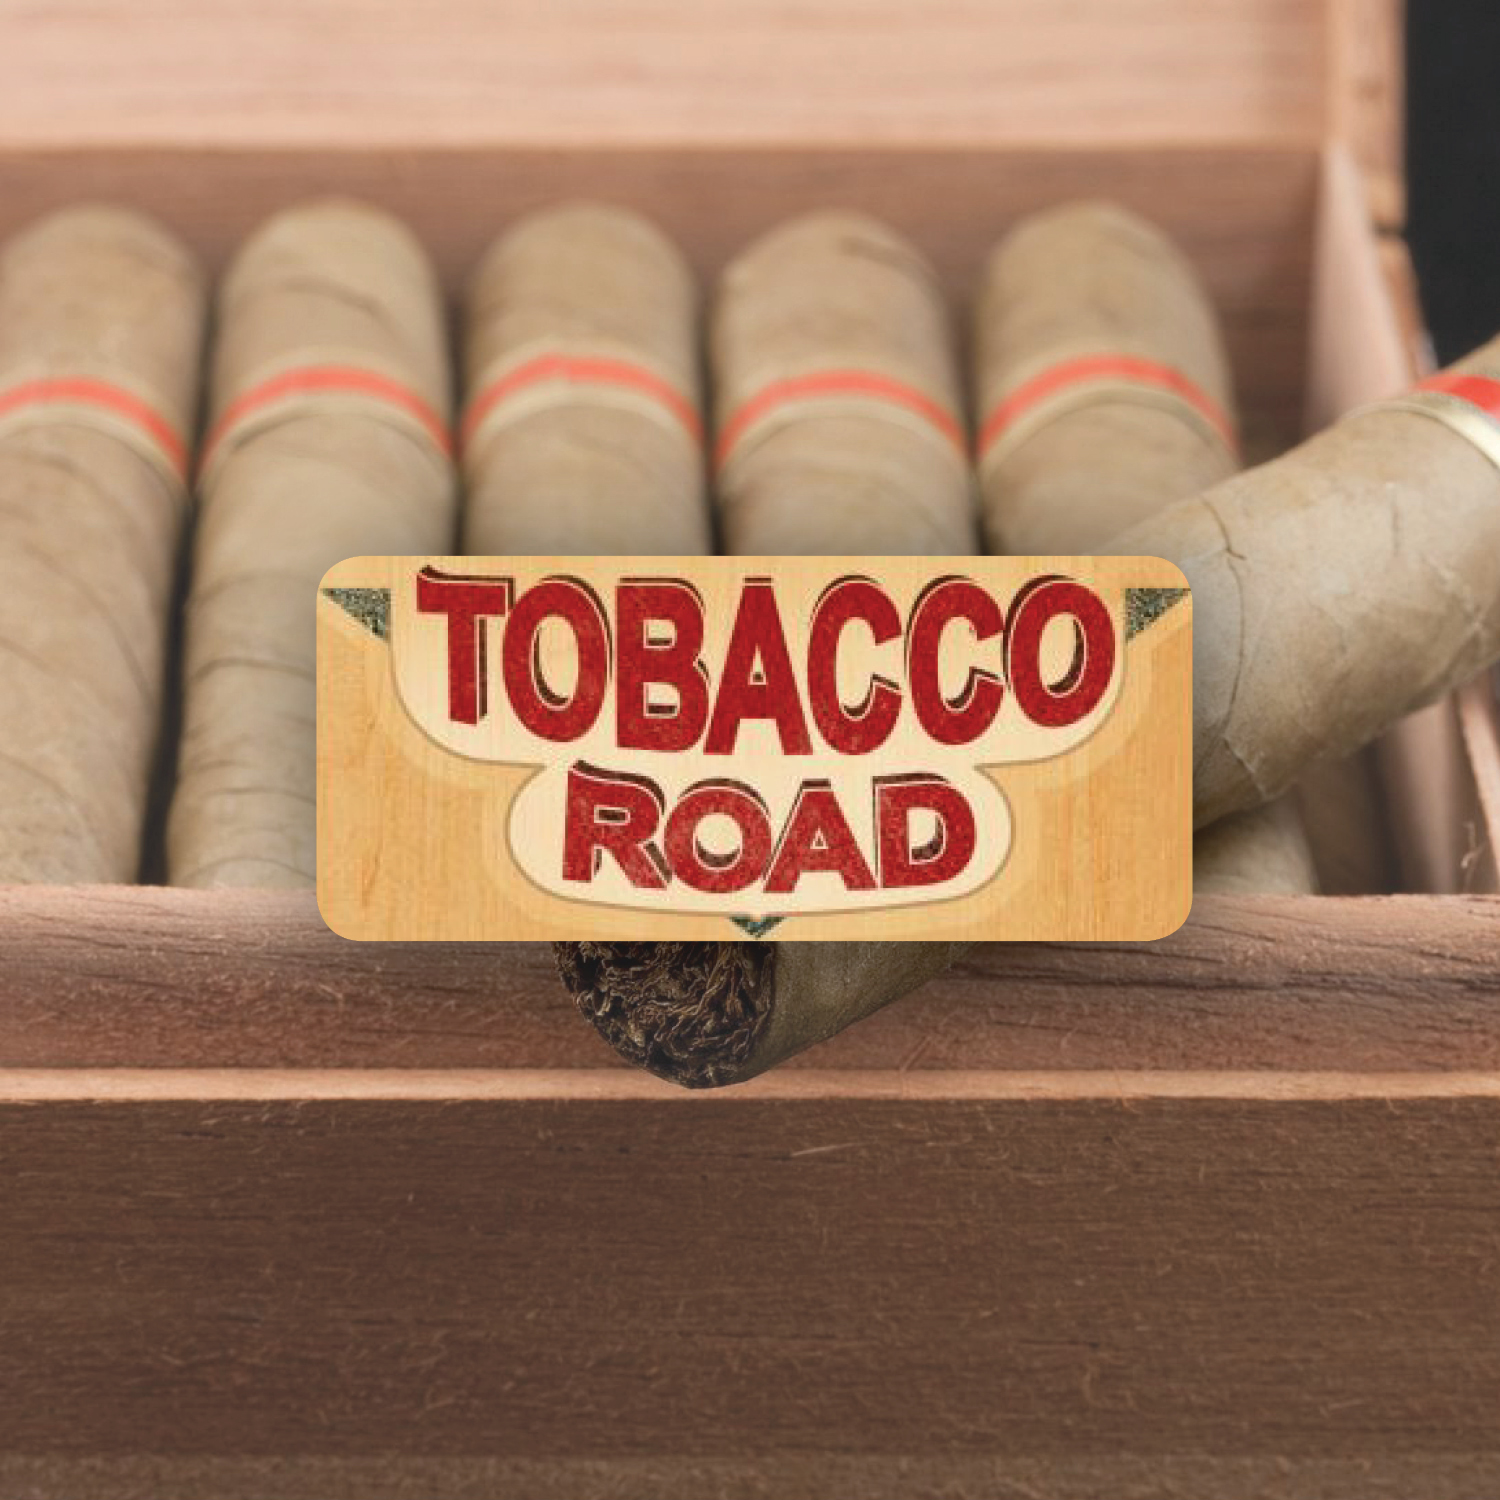 Tobacco Road opened its doors for business in June of 2012.  As avid consumers of tobacco products and due to the increasing prices of cigars, cigarettes, and accessories, we wanted to provide our customers a quality product at a more affordable price.       -Click image to view current offers-    .